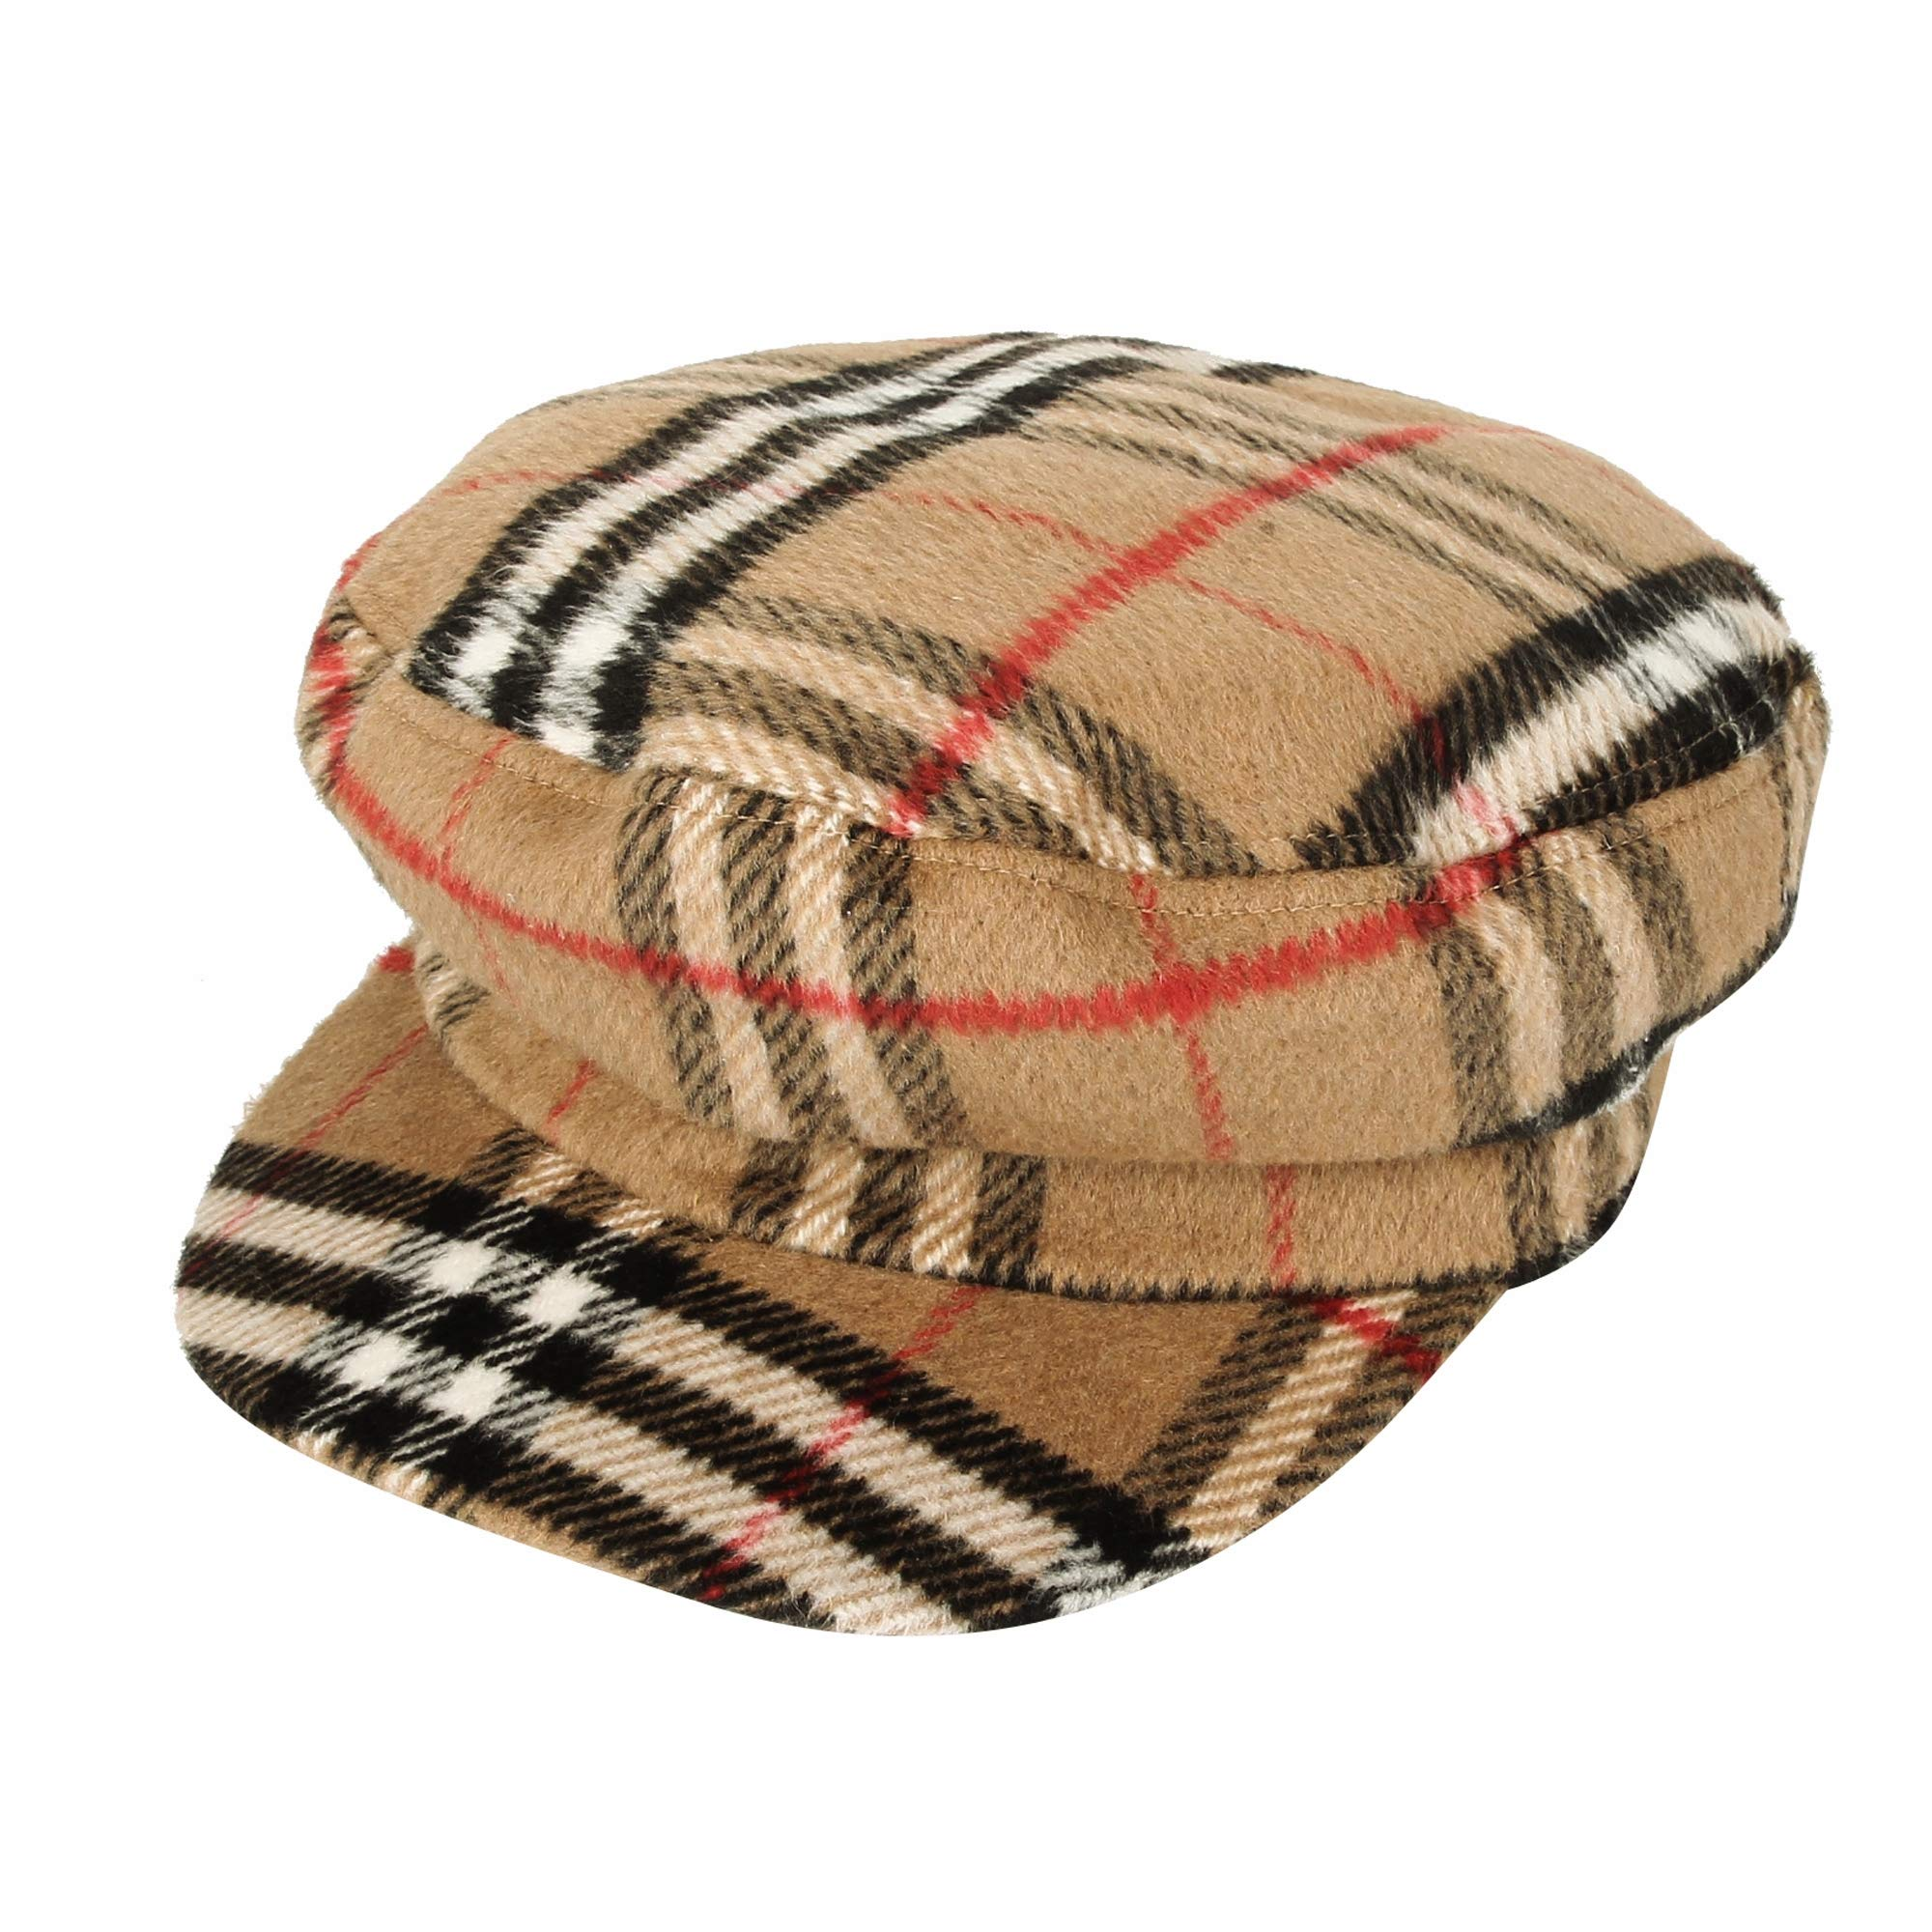 WITHMOONS Newsboy Hat Tartan Check Pattern British Beret Cap ACG1096 (Beige) by WITHMOONS